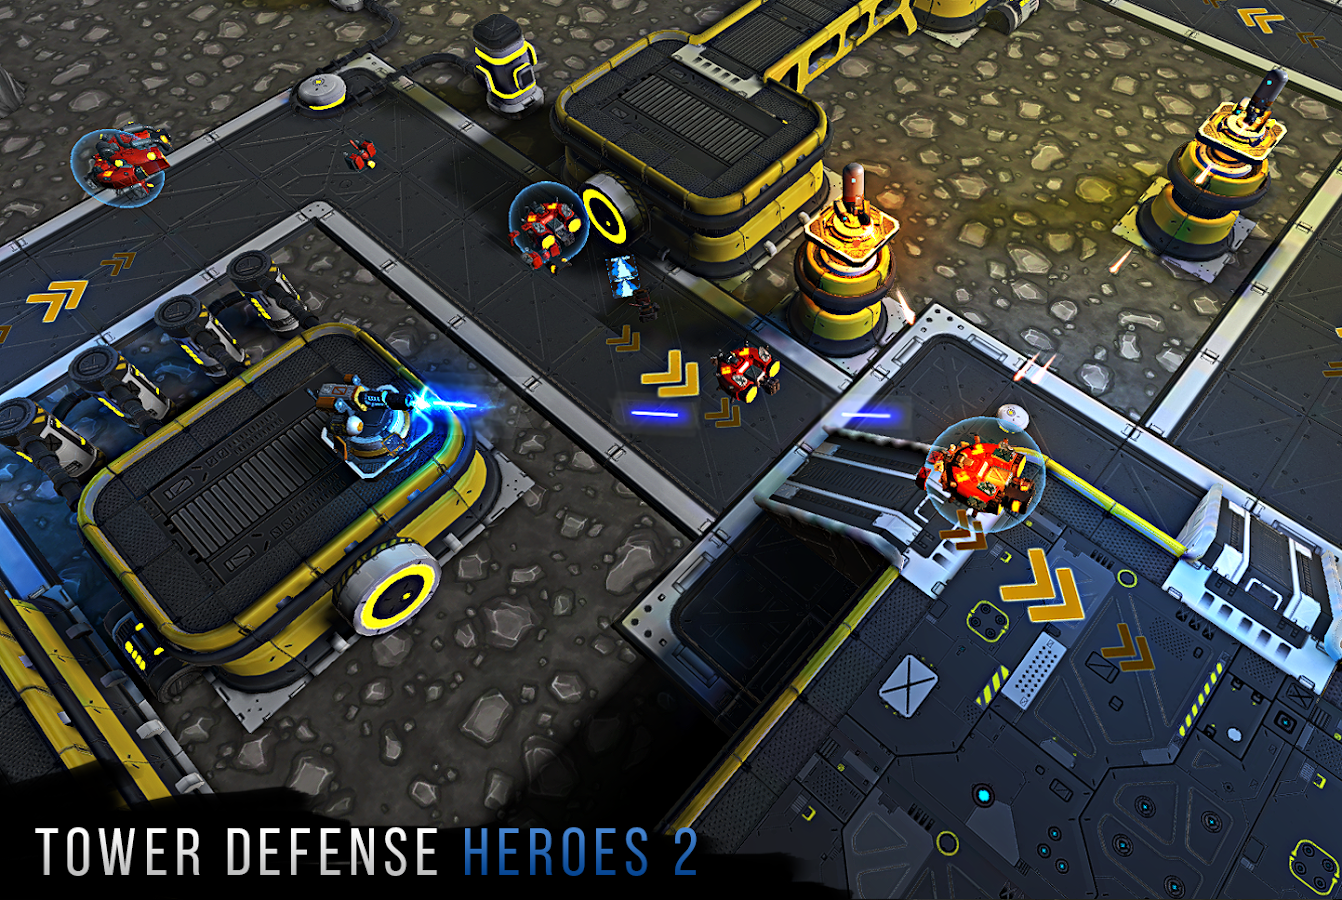 Tower Defense Heroes 2 Screenshot 5